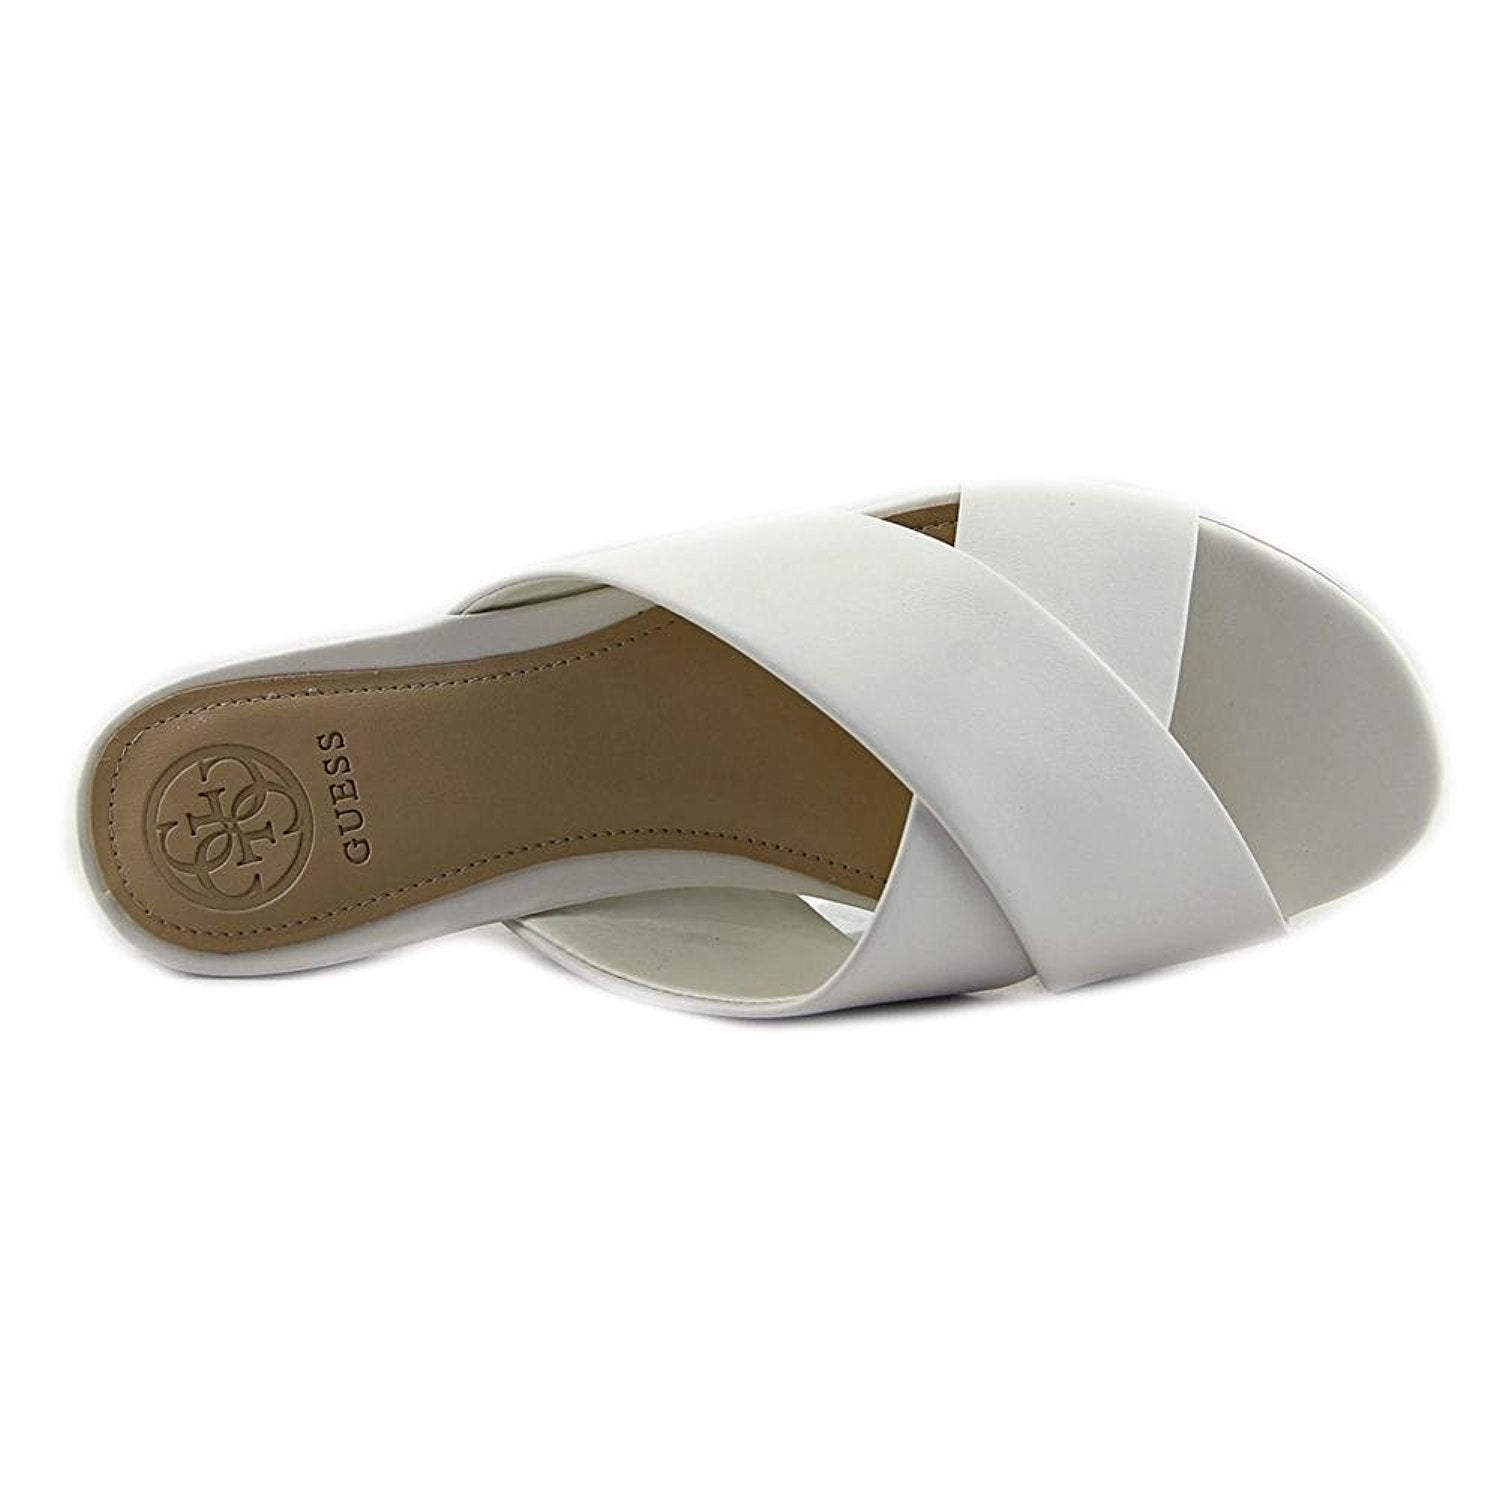 a4b1ee8249d Shop GUESS Womens Flashee3 Open Toe Casual Slide Sandals - Free Shipping On  Orders Over  45 - Overstock.com - 20263252